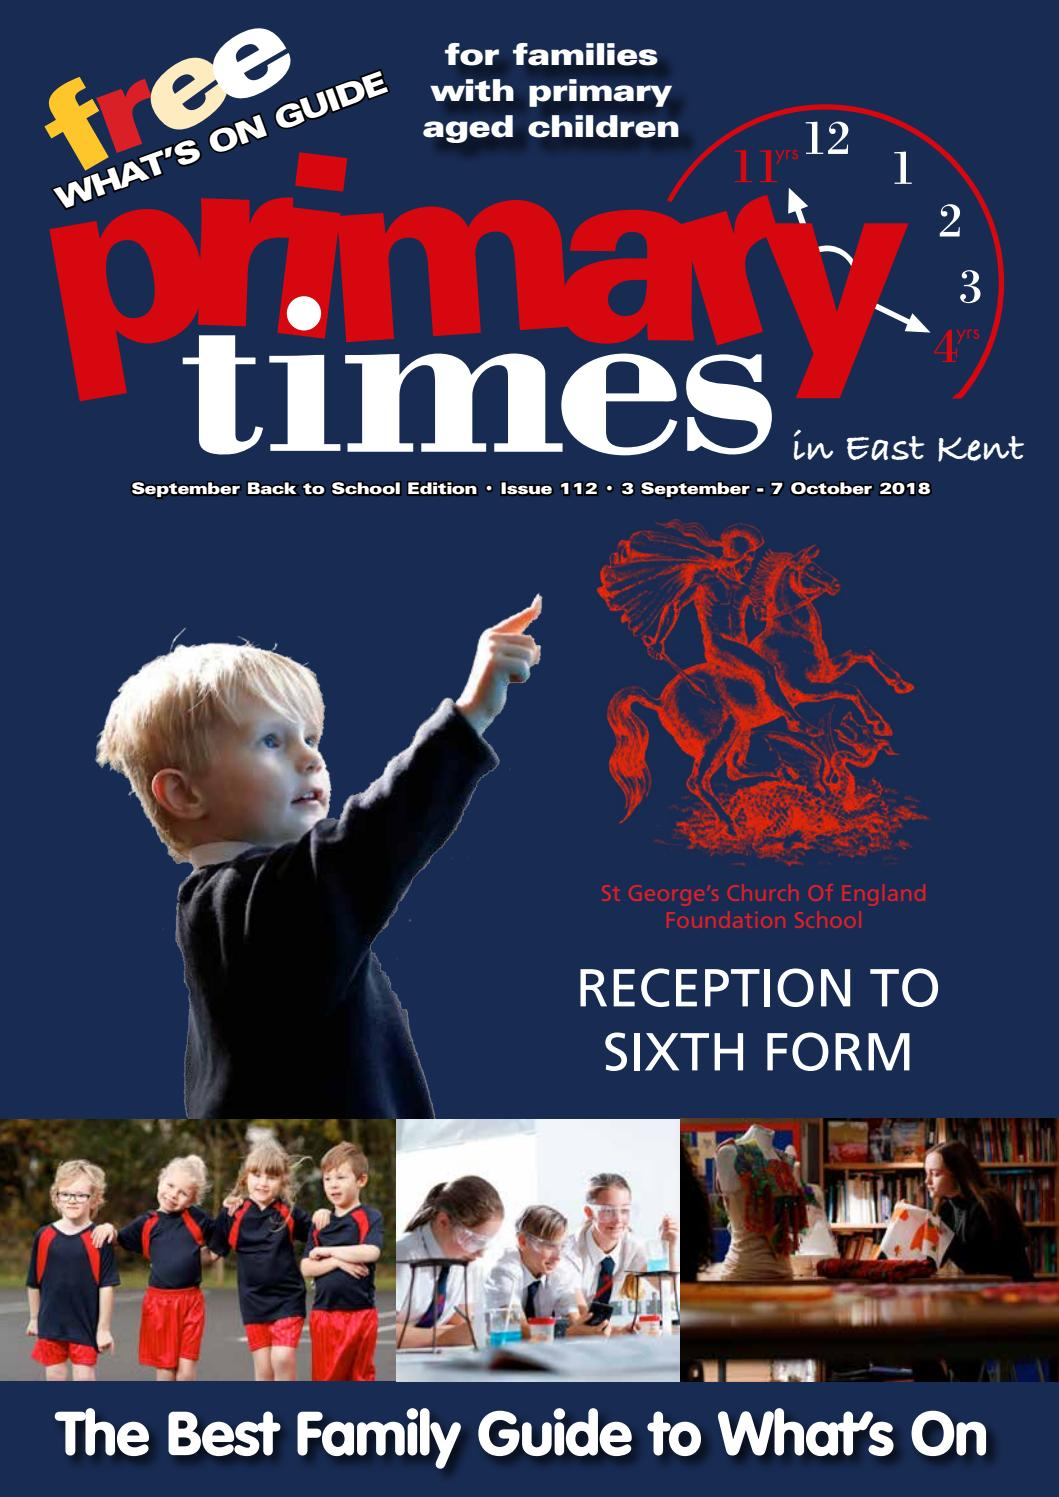 East Kent September Back to School 2018 issue by Alison